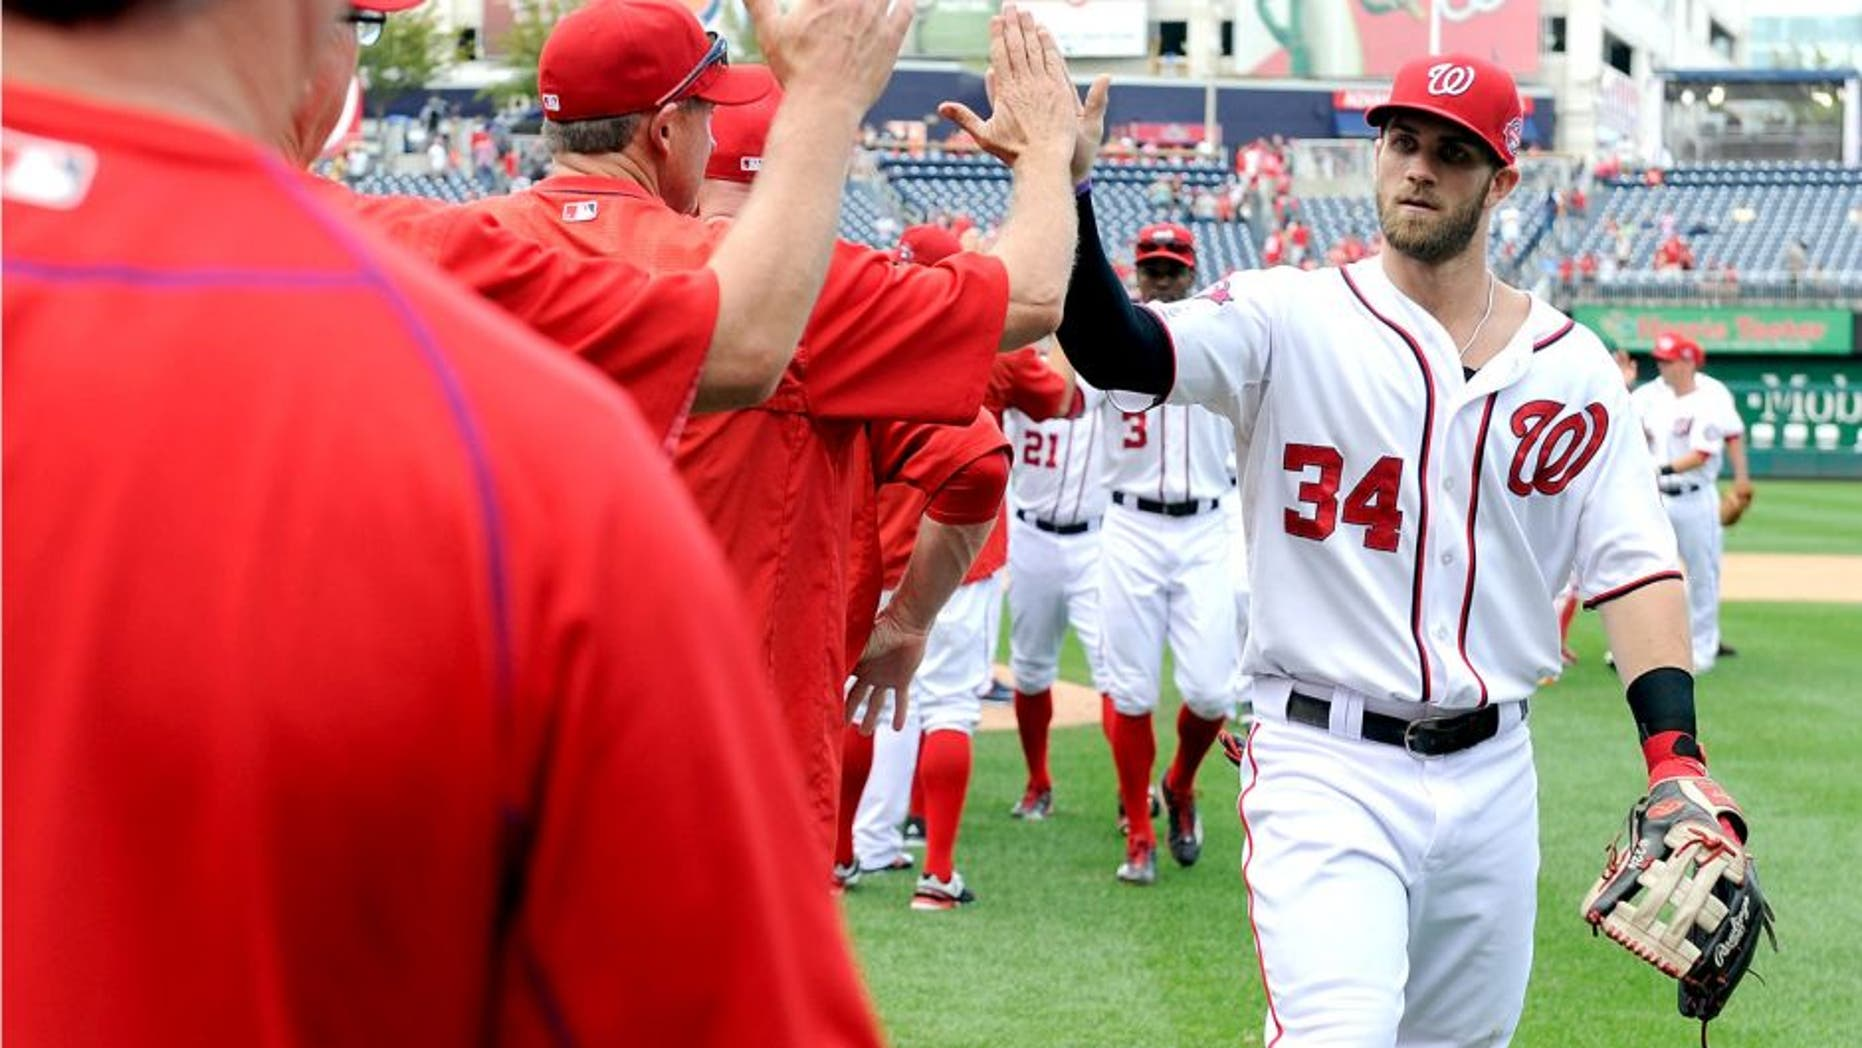 WASHINGTON, DC - SEPTEMBER 20: Bryce Harper #34 of the Washington Nationals celebrates with teammates after a 13-3 victory against the Miami Marlins at Nationals Park on September 20, 2015 in Washington, DC. (Photo by Greg Fiume/Getty Images)